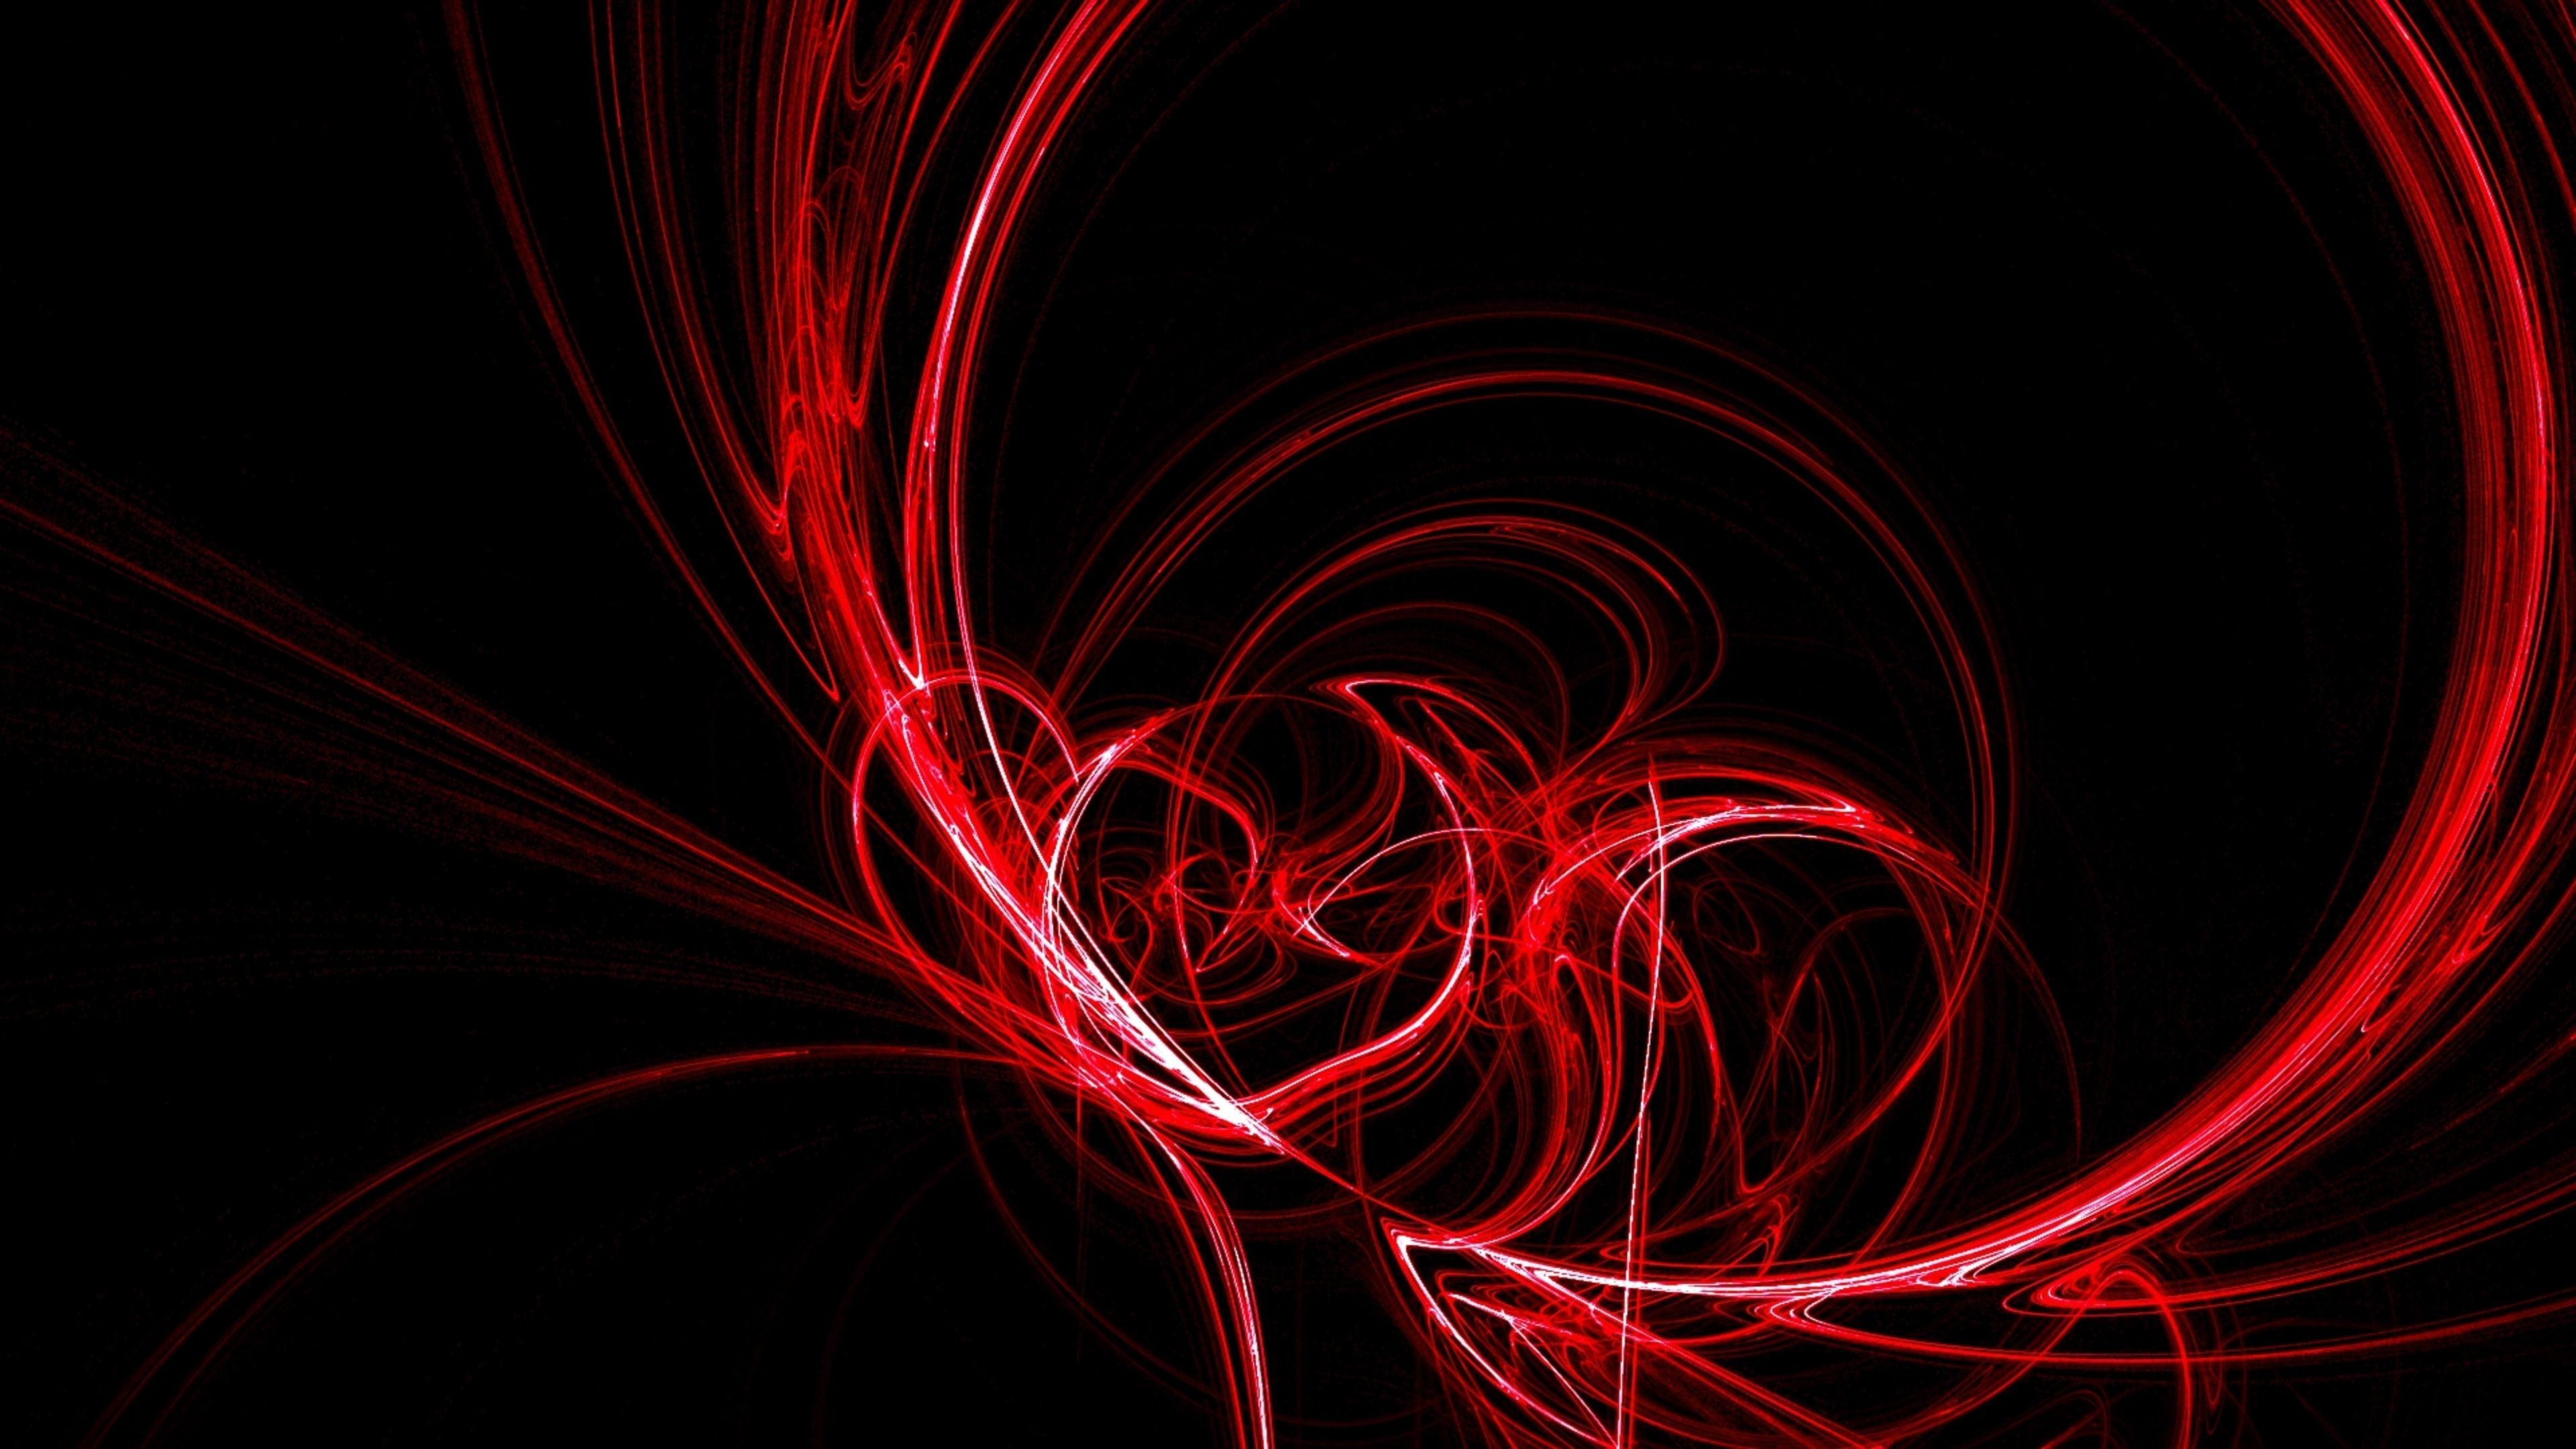 Red and Black 4K Ultra HD Nature Wallpapers - Top Free Red ...